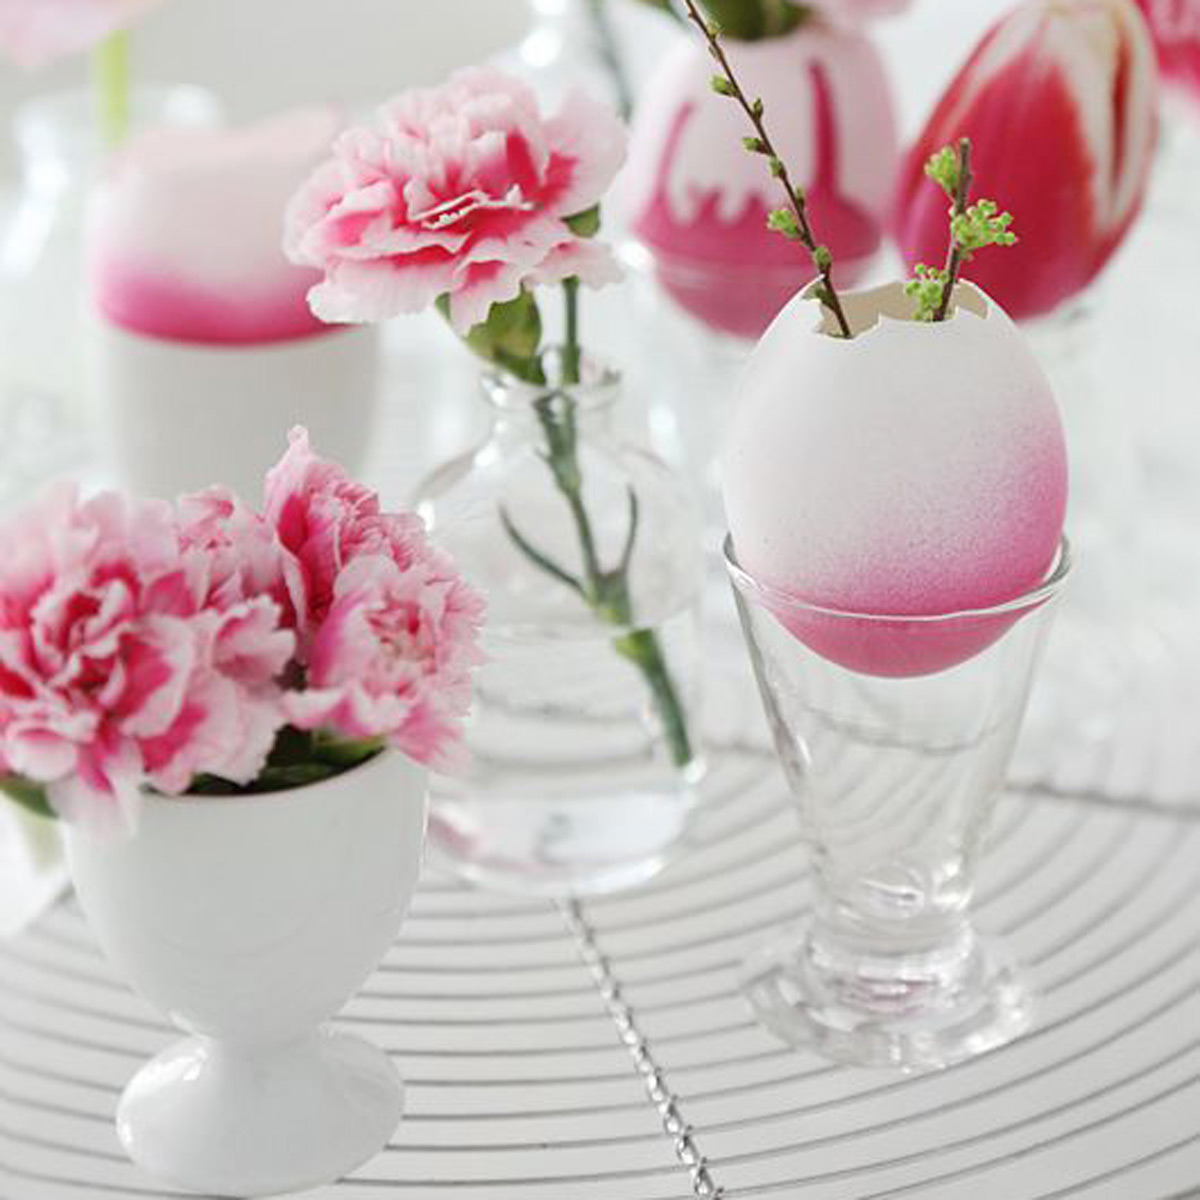 Easter decorations  20 stunning Easter table decorations   Good     Easter decorations  20 stunning Easter table decorations   Good Housekeeping